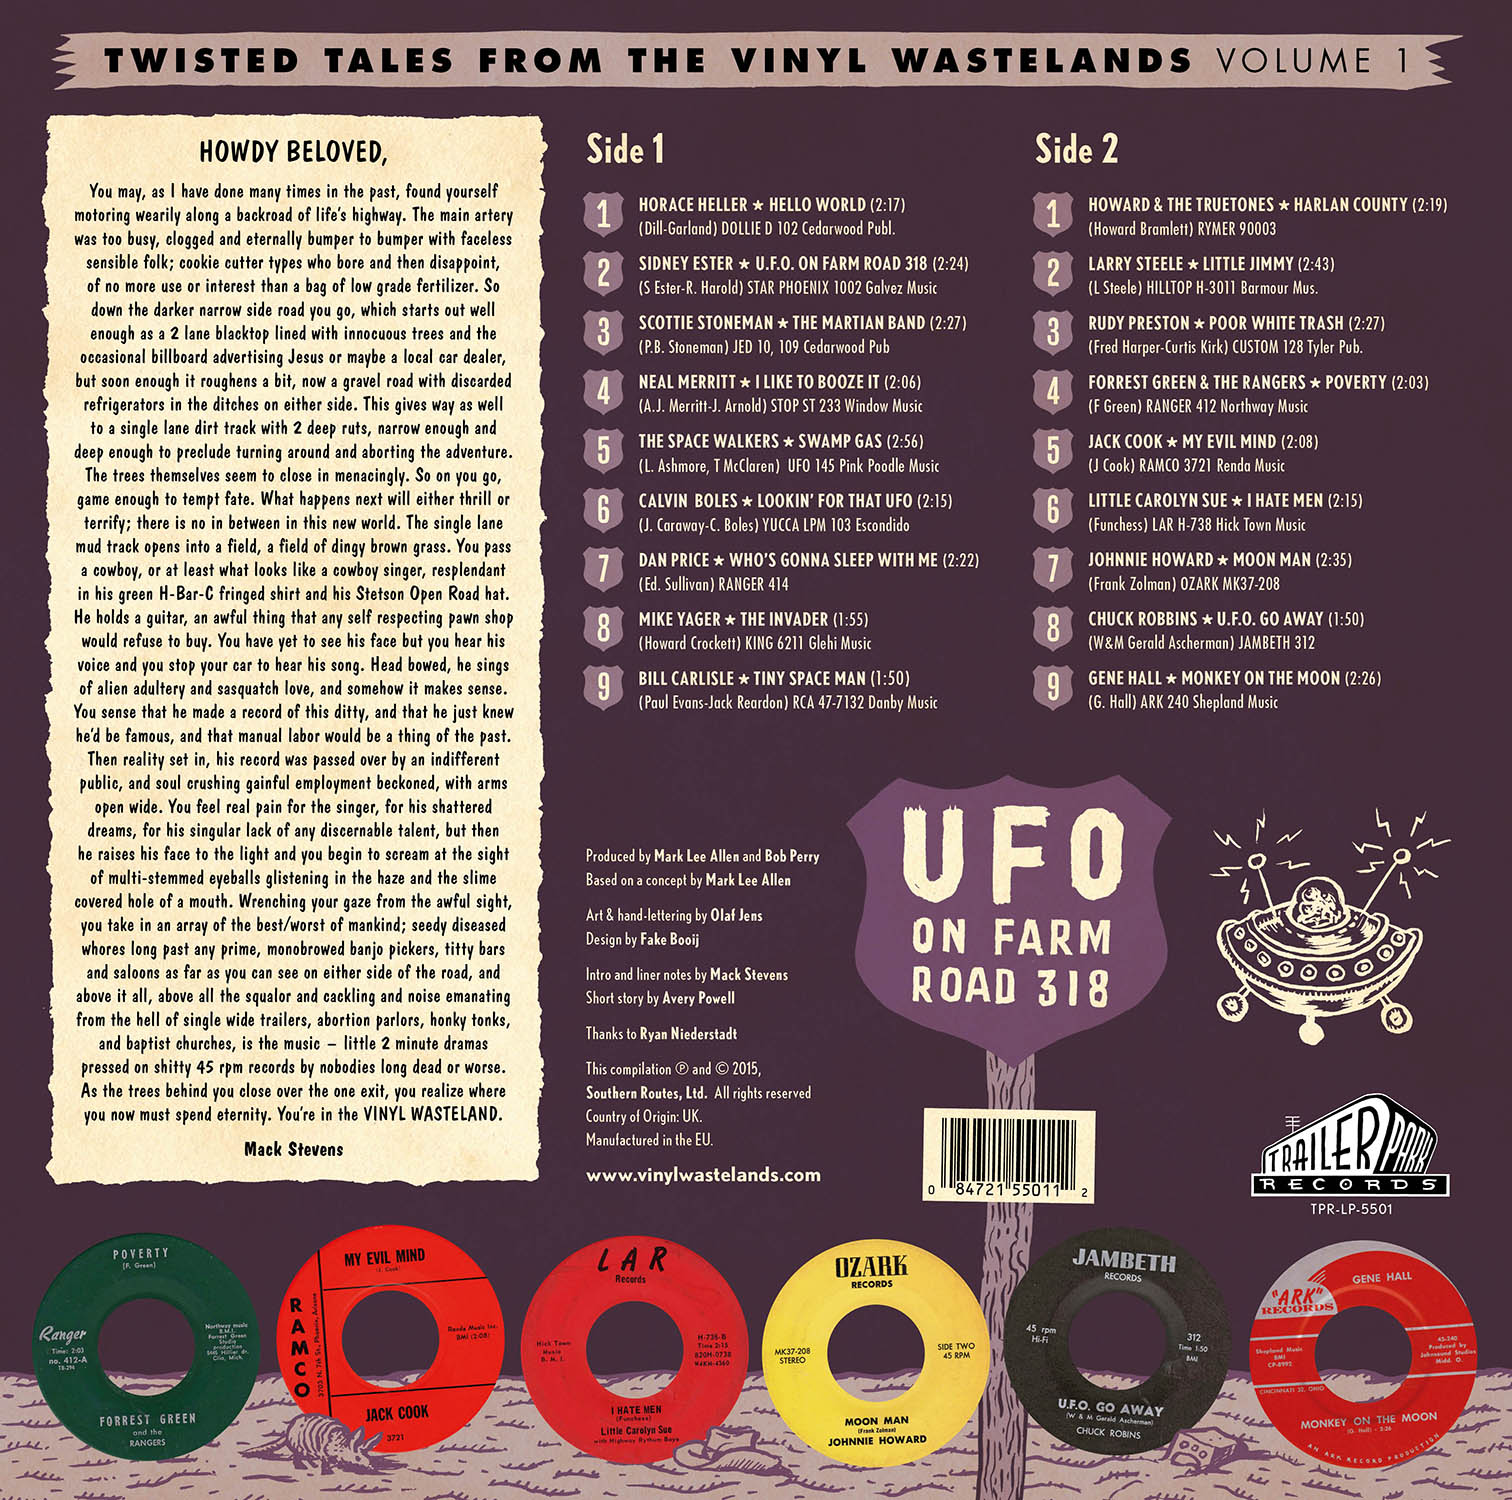 Twisted Tales From The Vinyl Wastelands Volume 1